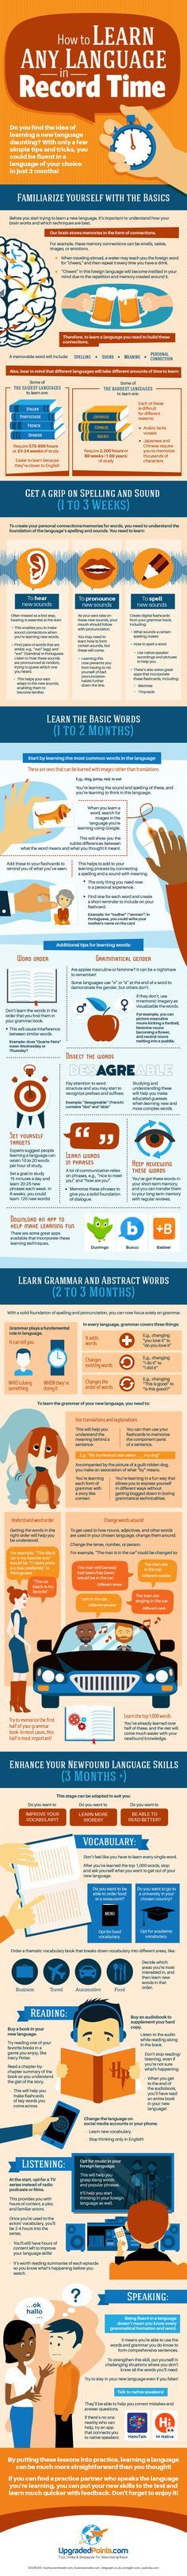 Educational infographic & data visualisation How To Learn Any Language In Record Time Infographic Infographic Description Sprachen lernen leicht gemacht. Portuguese Lessons, Learn Portuguese, Learn German, Learn English, Study German, Russian Lessons, Brazilian Portuguese, Learn Russian, Portuguese Language